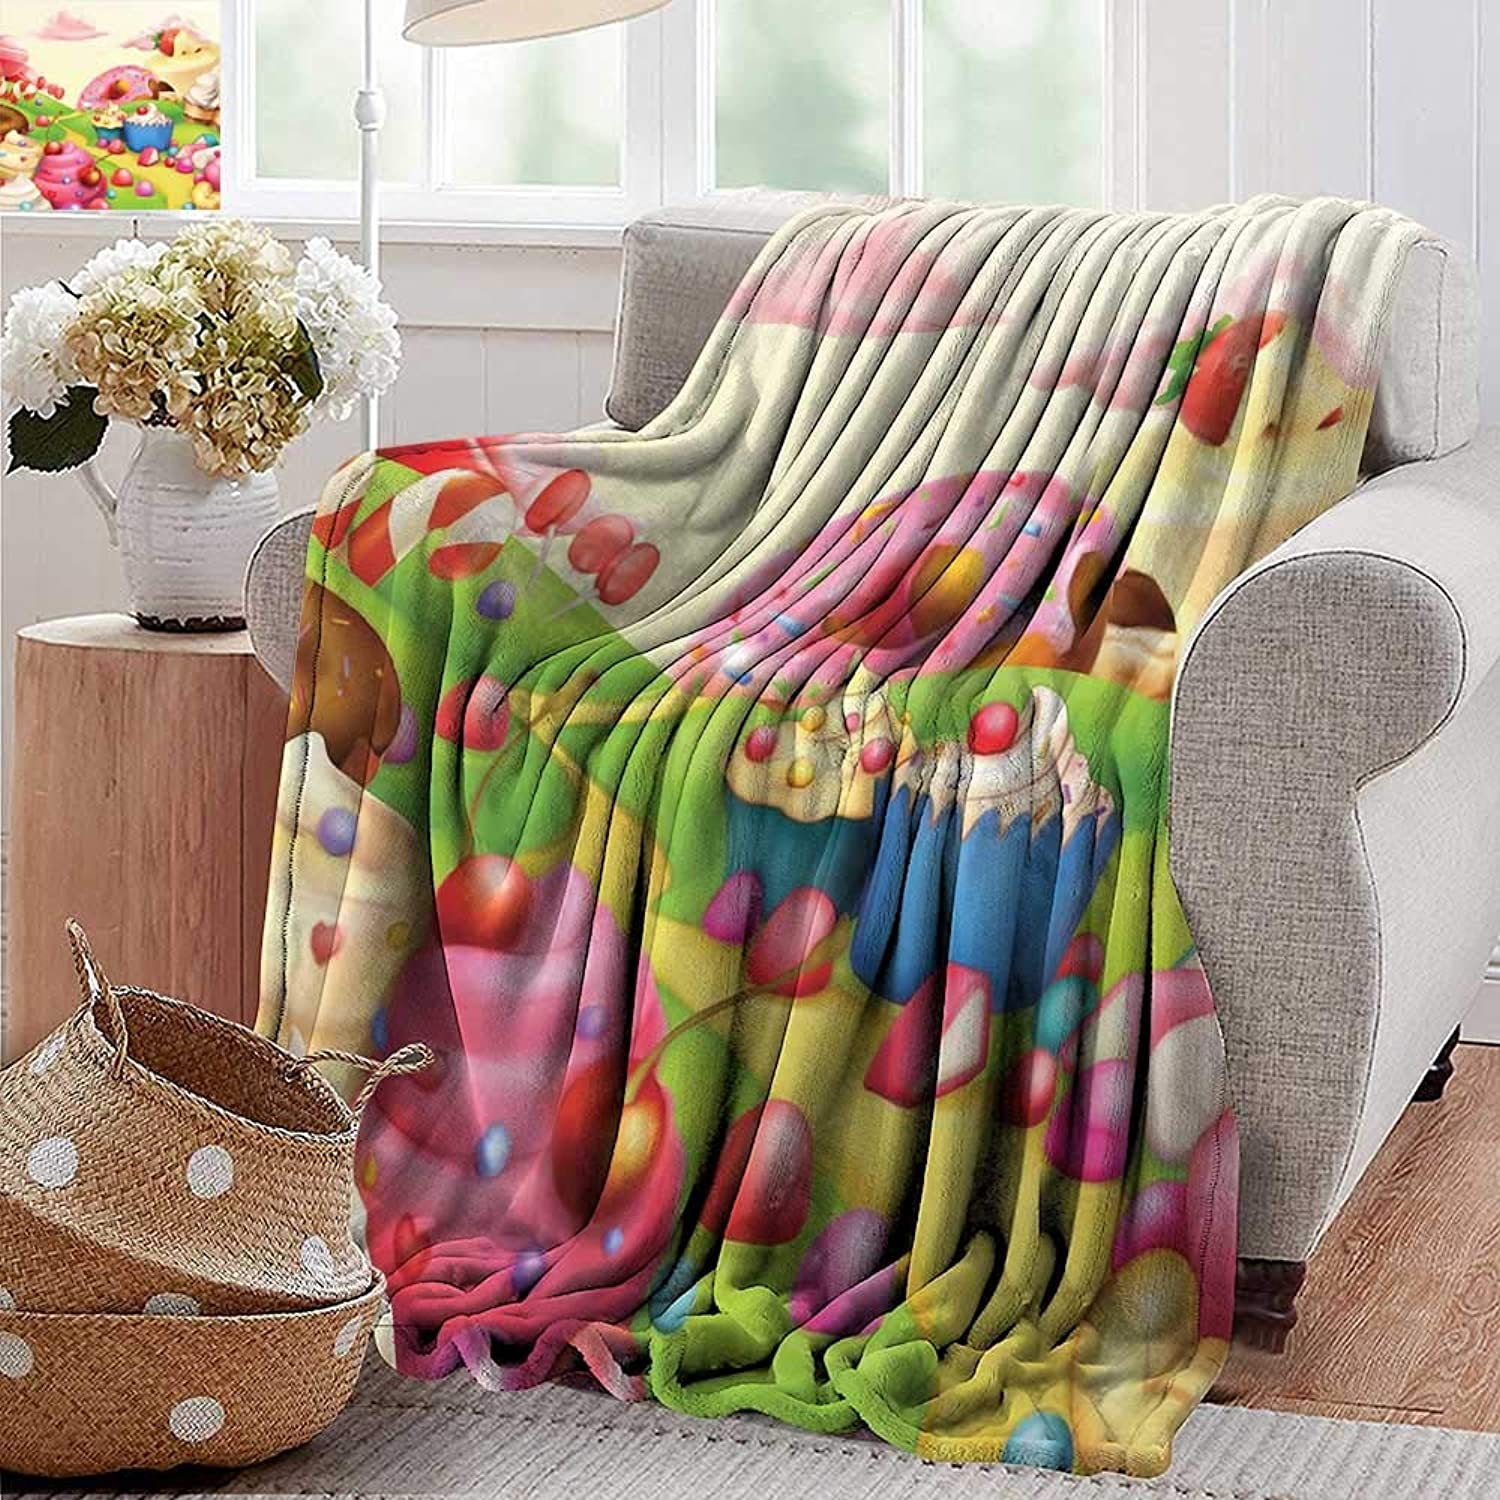 PearlRolan Cool Blanket,Modern,Yummy Donuts Sweet Land Cupcakes Ice Cream Cotton Candy Clouds Kids Nursery Design,Multicolor,300GSM,Super Soft and Warm,Durable Throw Blanket 50 x60